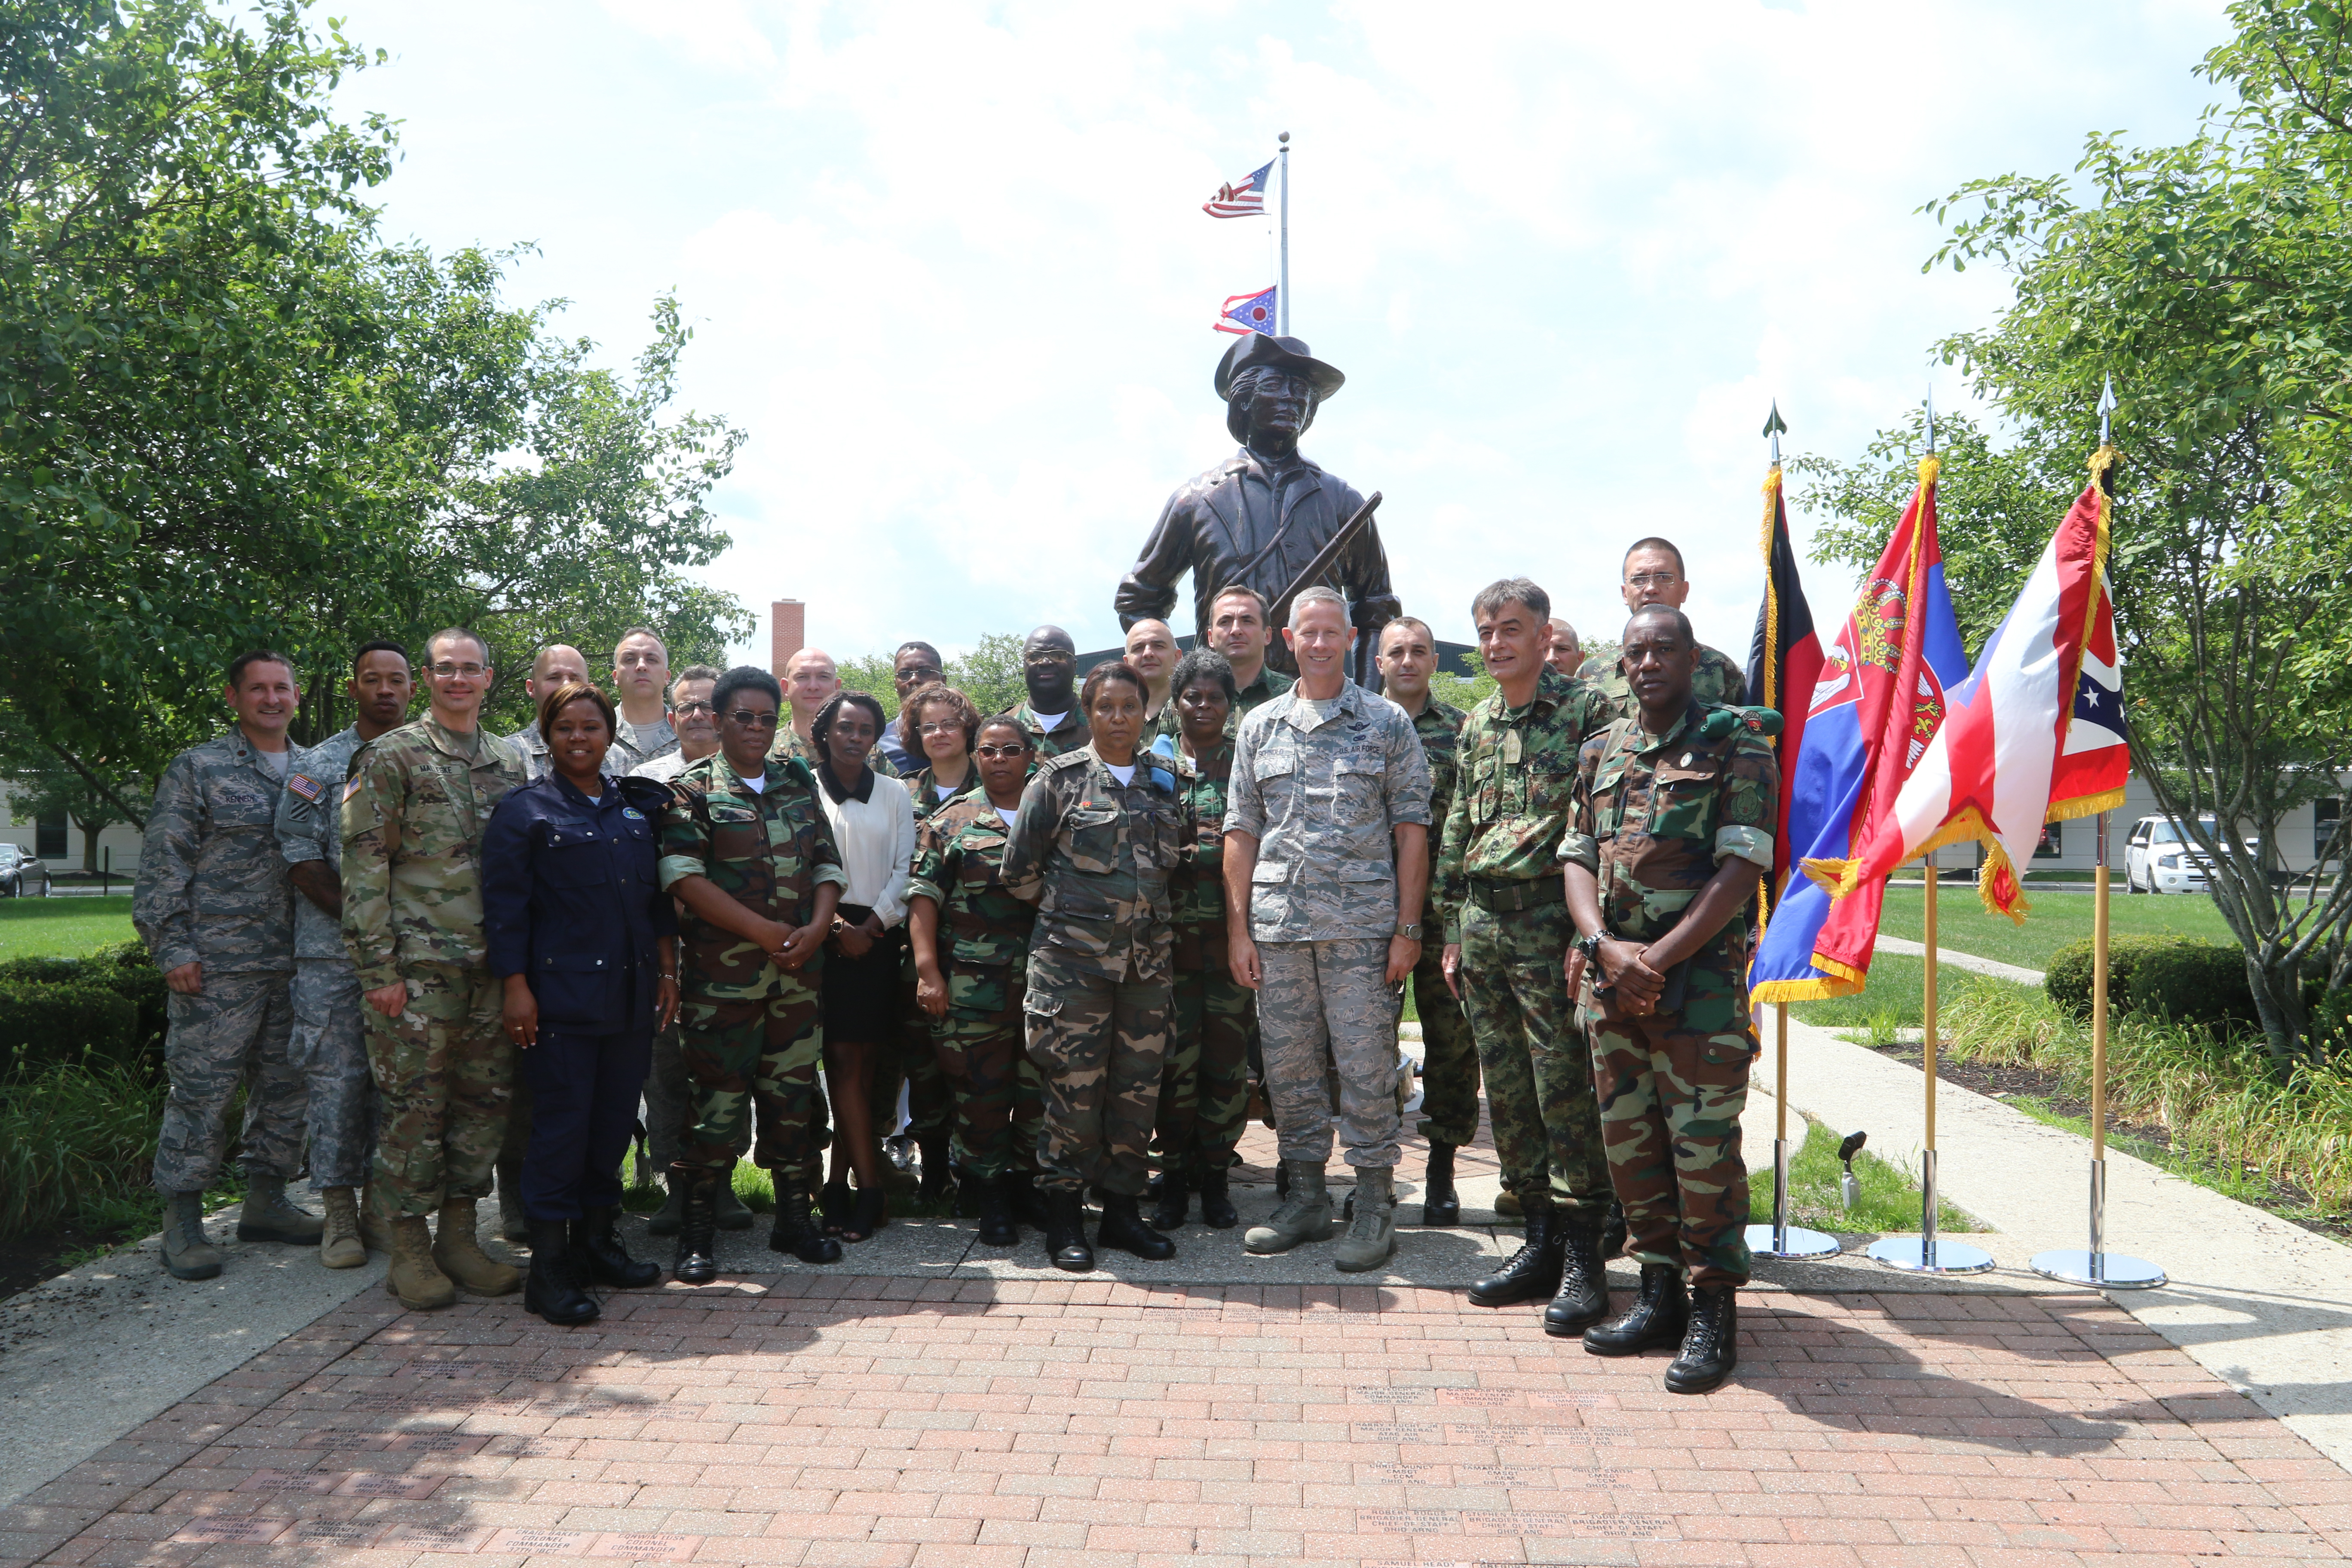 Representatives from the Serbian and Angolan Armed Forces meet with members of the Ohio National Guard June 29, 2017, at Joint Force Headquarters-Ohio, located at the Maj. Gen. Robert S. Beightler Armory in Columbus, Ohio. The group, which stopped for a photo in front of the National Guard minuteman statue at ONG headquarters, discussed plans for an upcoming Combined Medical Engagement set to take place in Angola later this year. (Ohio National Guard photo by Staff Sgt. Michael Carden)